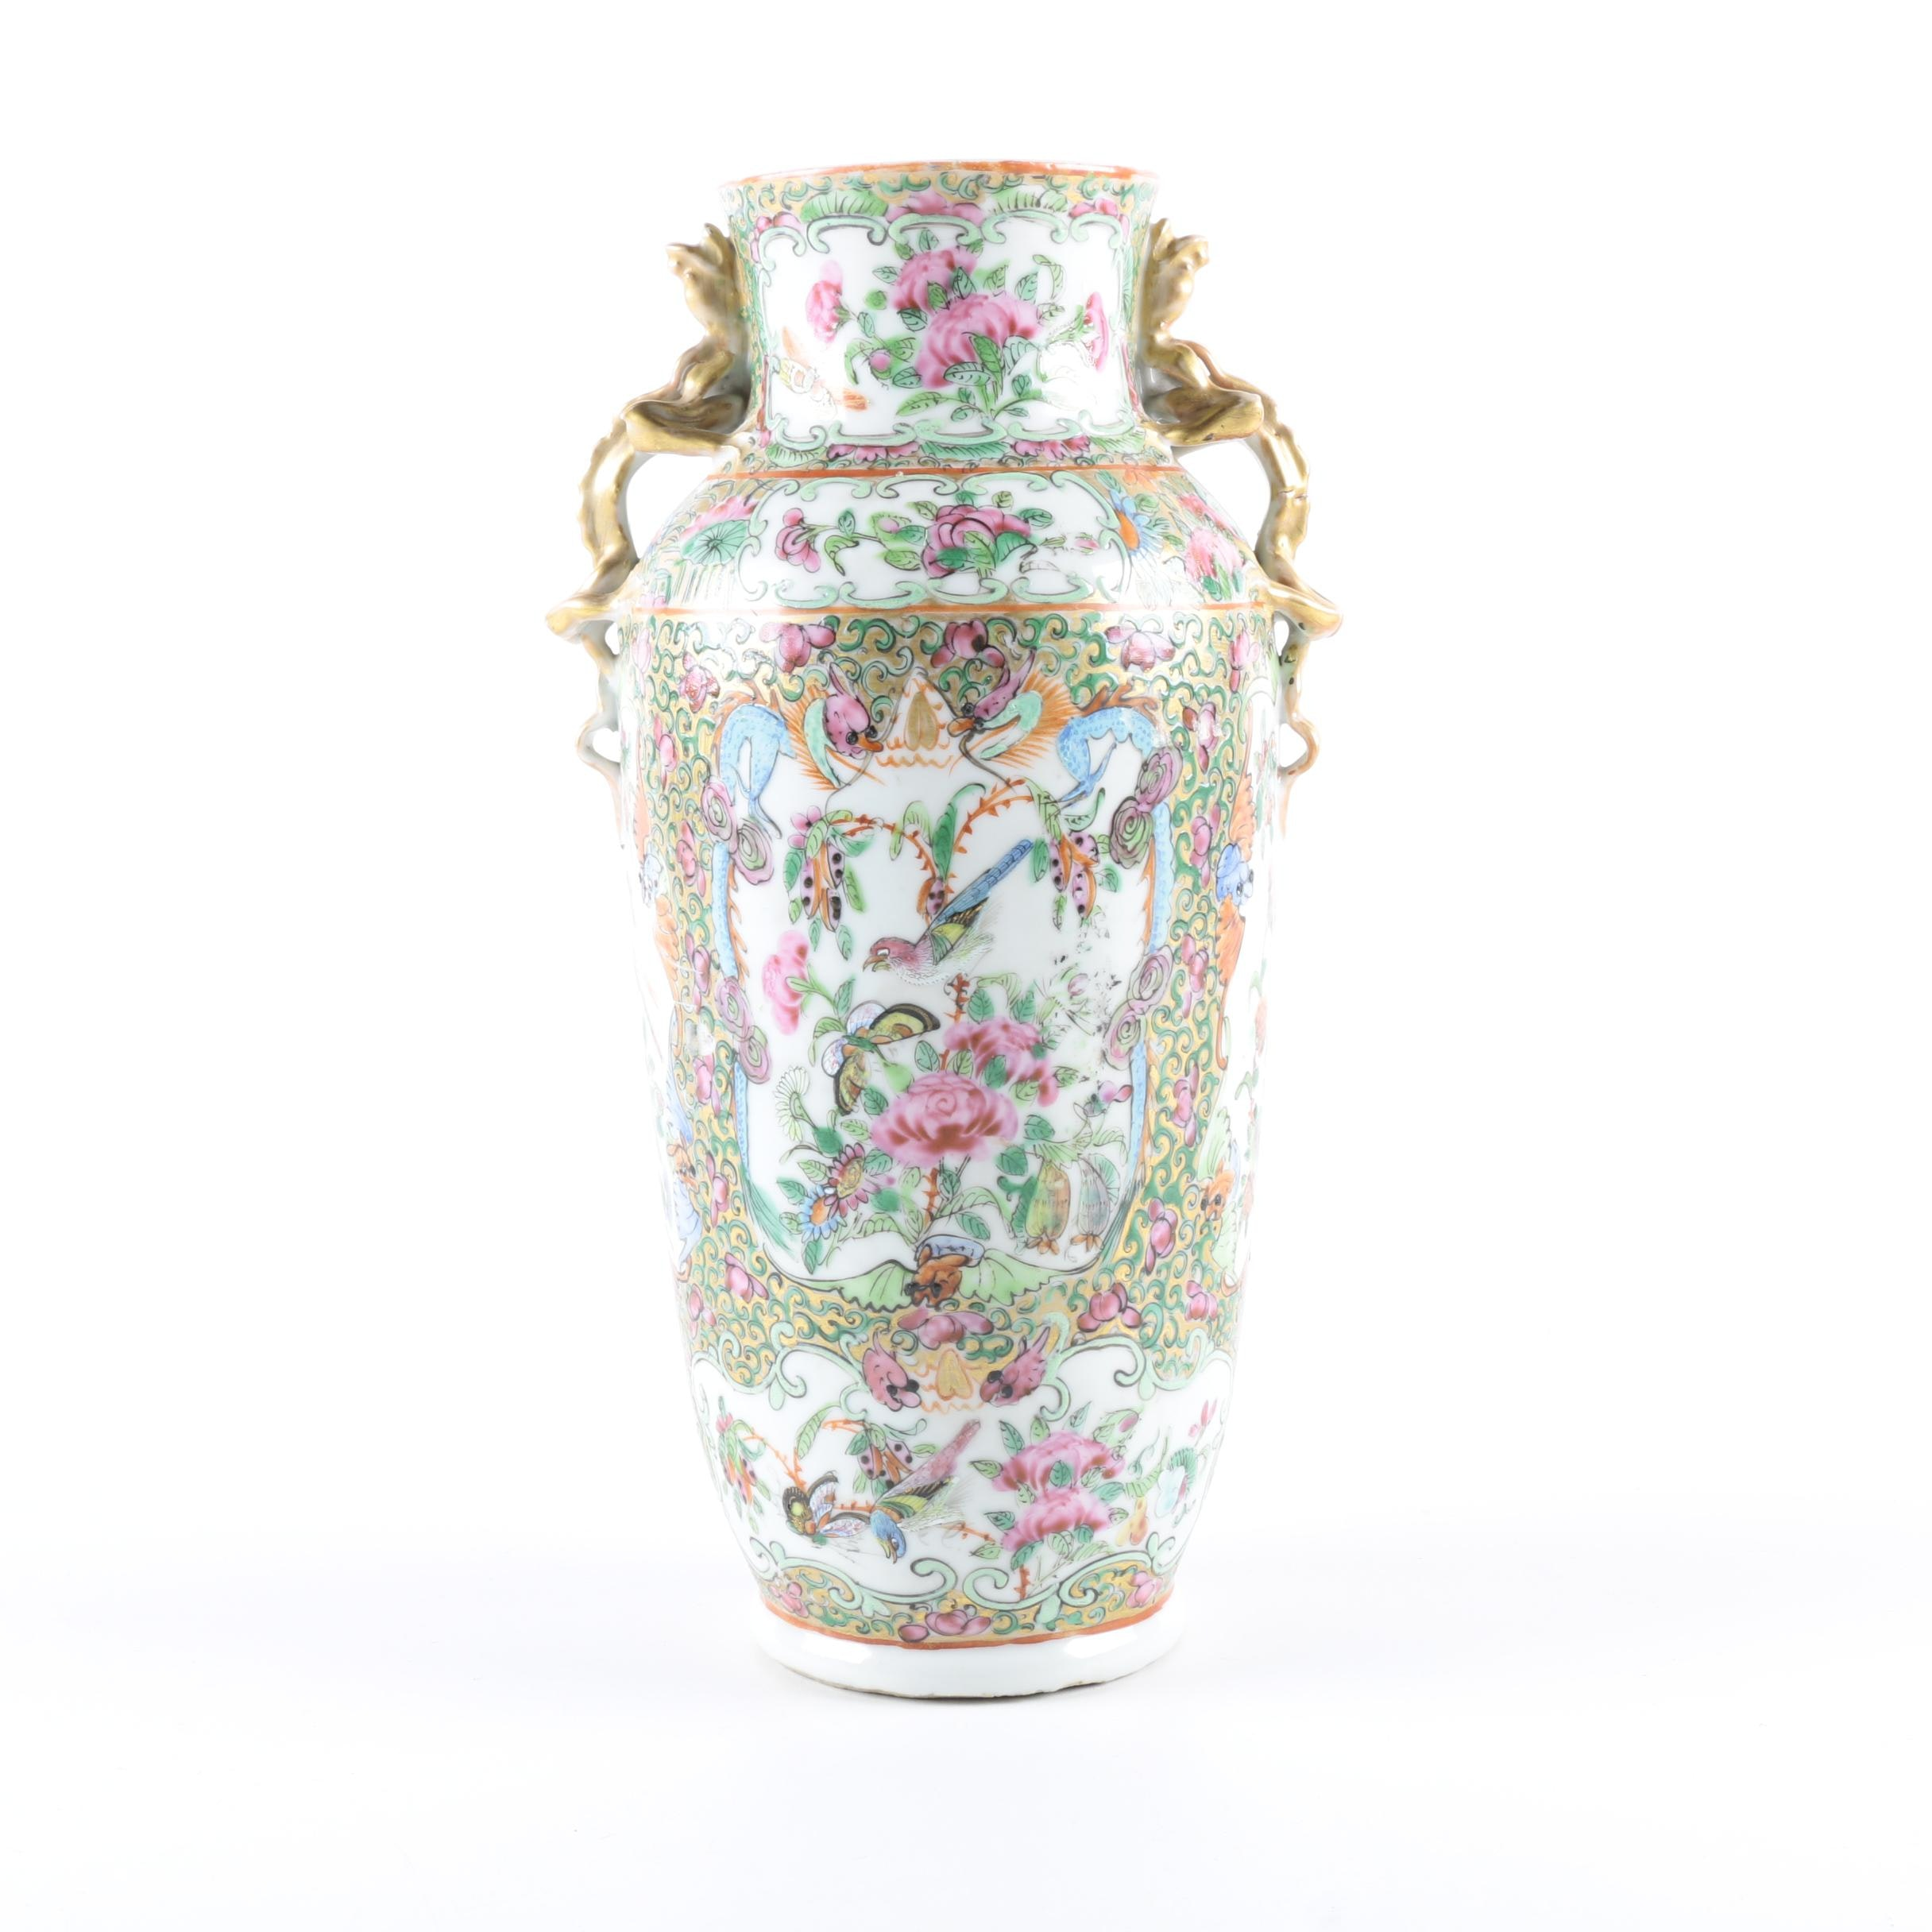 East Asian Style Hand-Painted Porcelain Vase